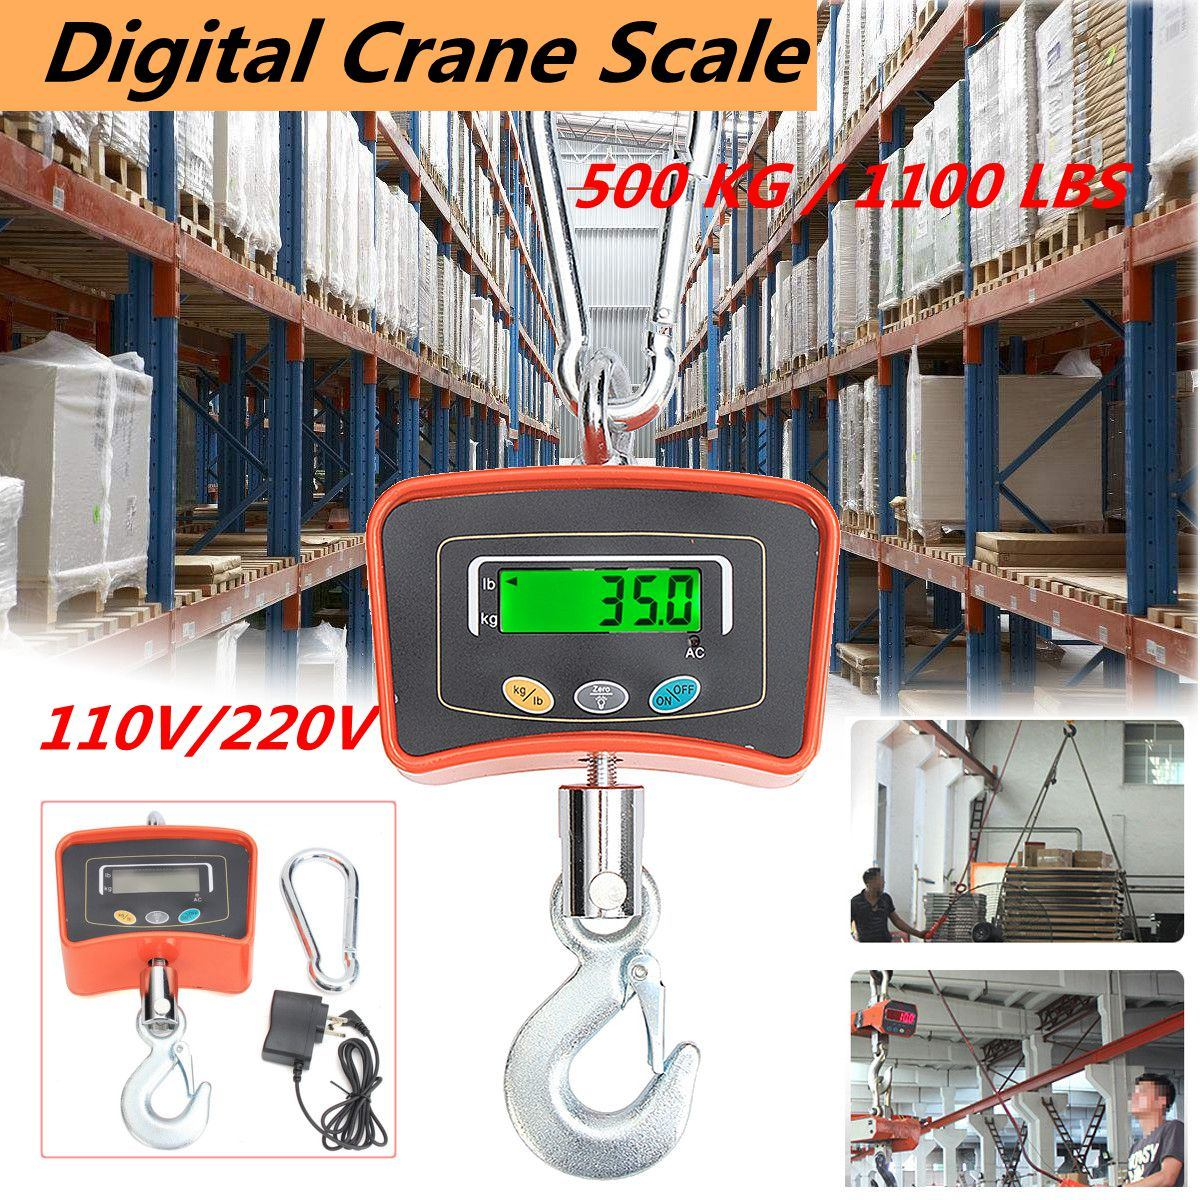 500KG/1100 LBS Digital Crane Scale 110V/220V Heavy Industrial Hanging Scale Electronic Weighing Balance Tools